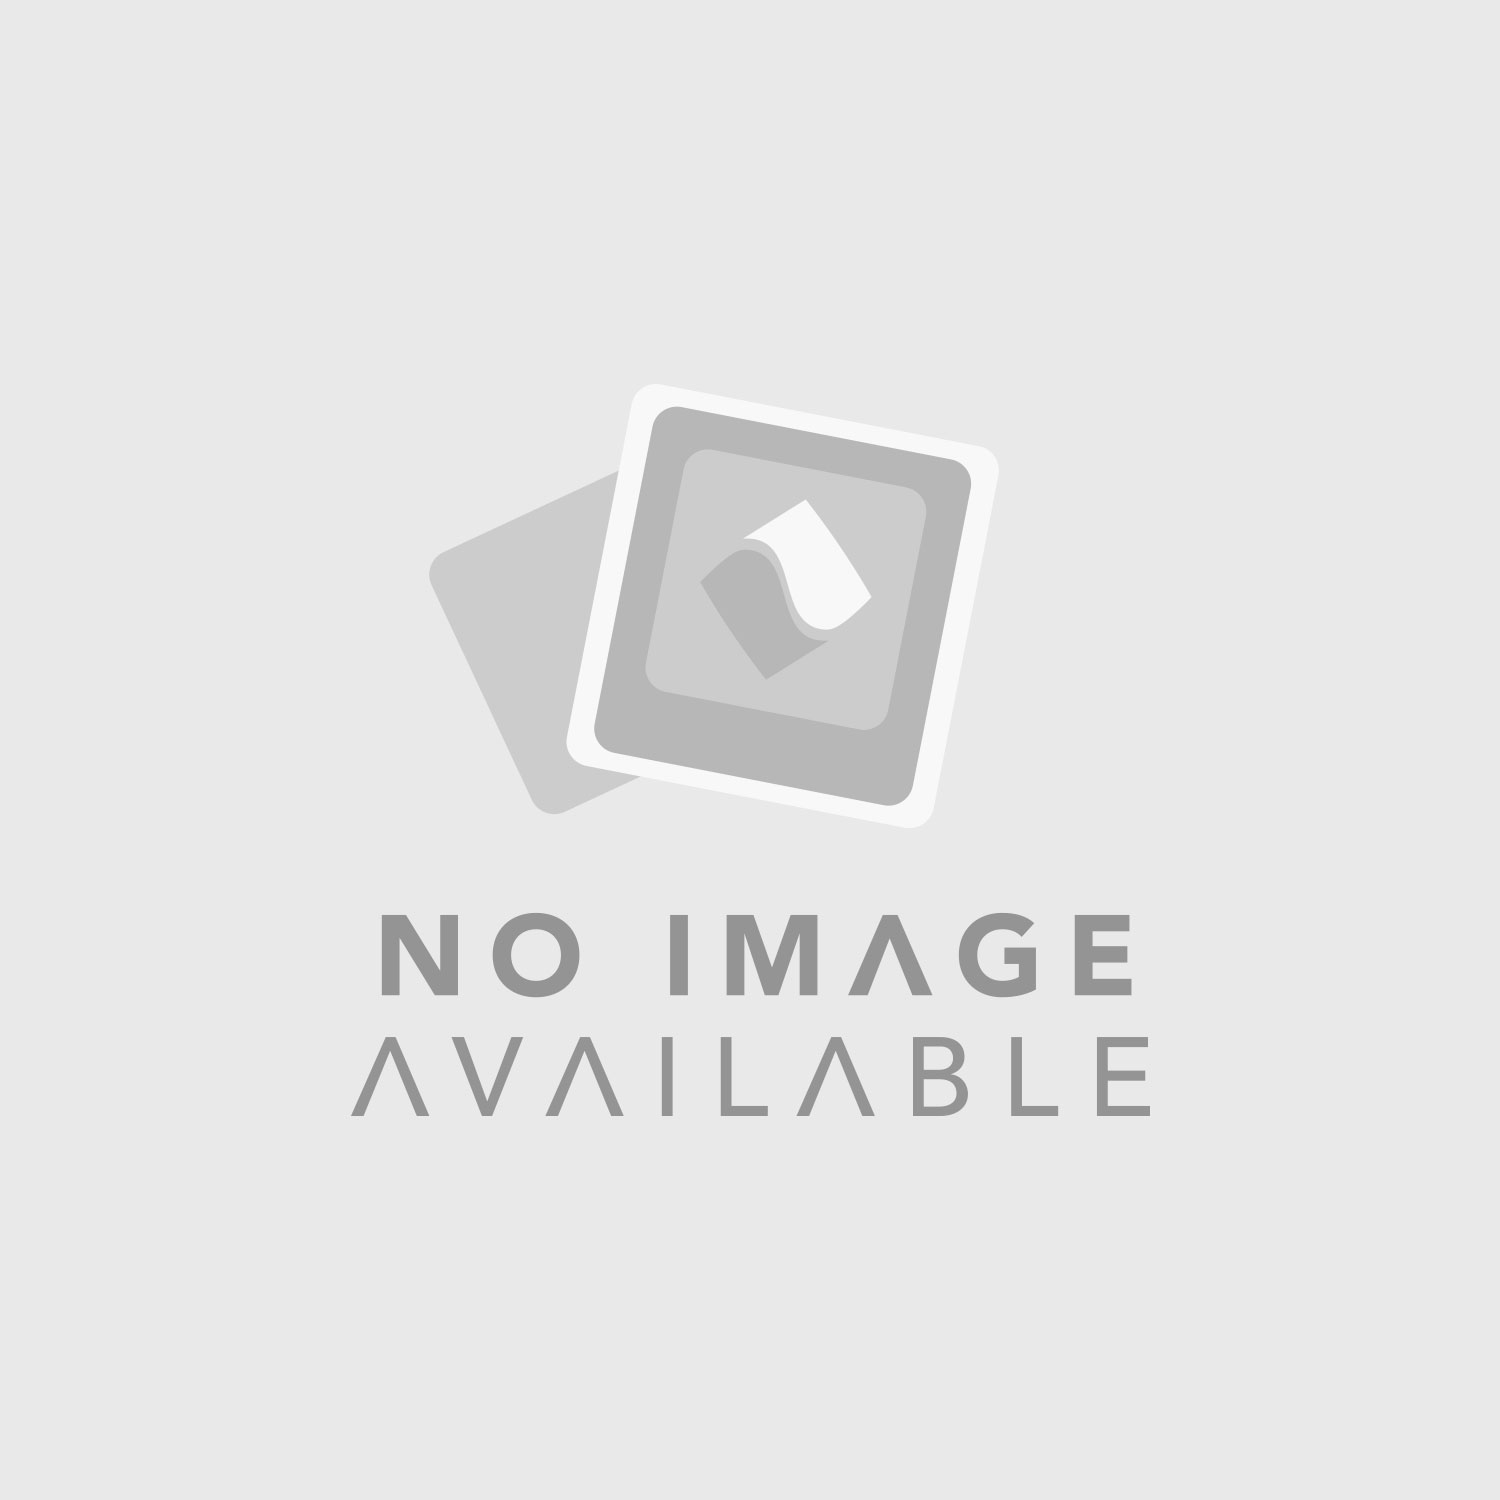 """CLEARANCE Atlas Sound FAP43T-W 4.5"""" Coaxial In-Ceiling 70/100V Speaker OPEN BOX (1 Available)"""